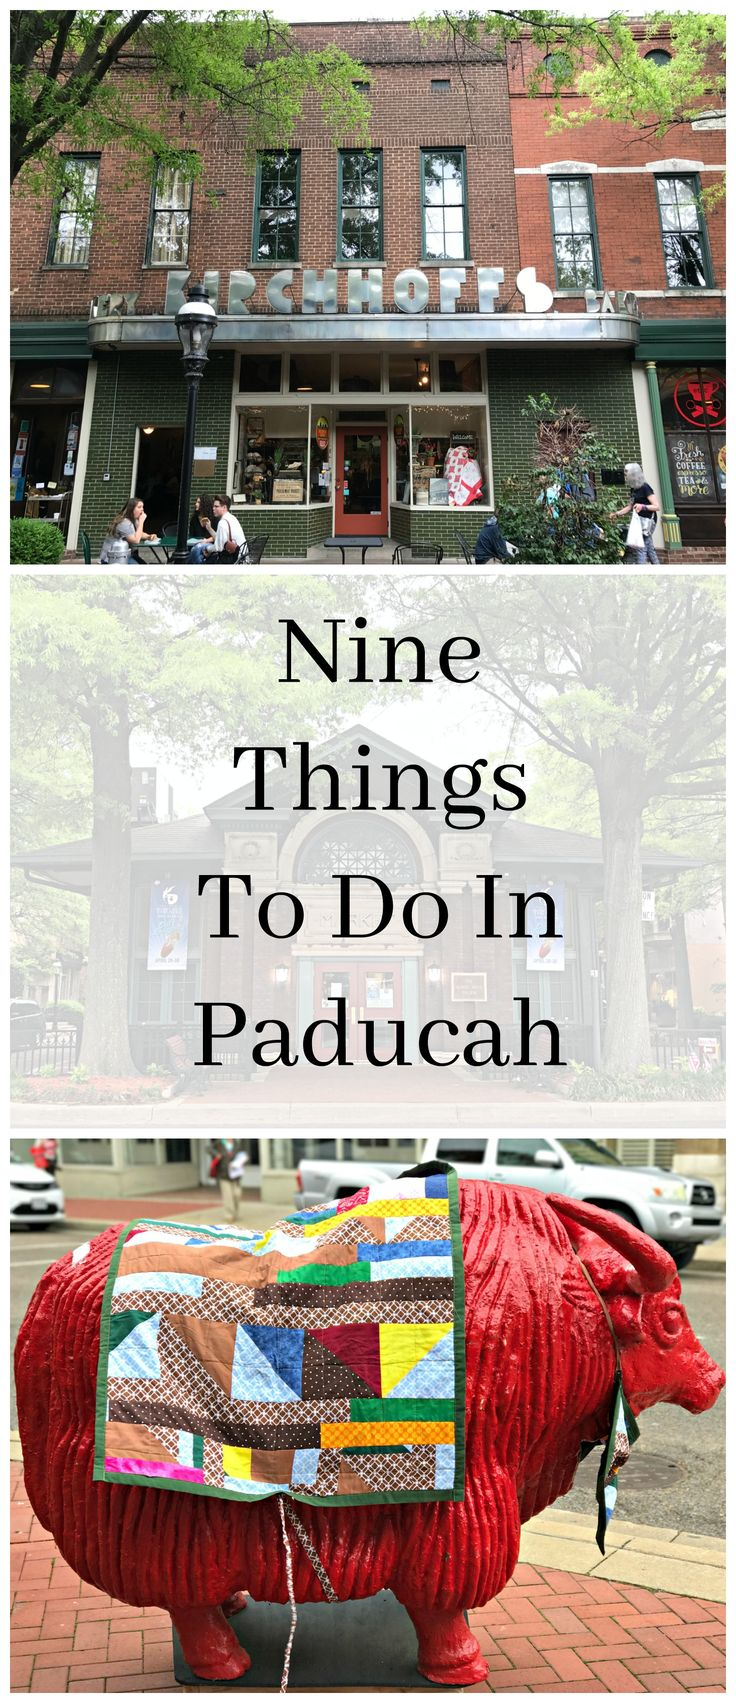 Whether you are in Paducah, Kentucky for AQS Quilt Week or just because, here are Nine Things To Do In Paducah.  There's more to Paducah than the Paducah Quilt Show.